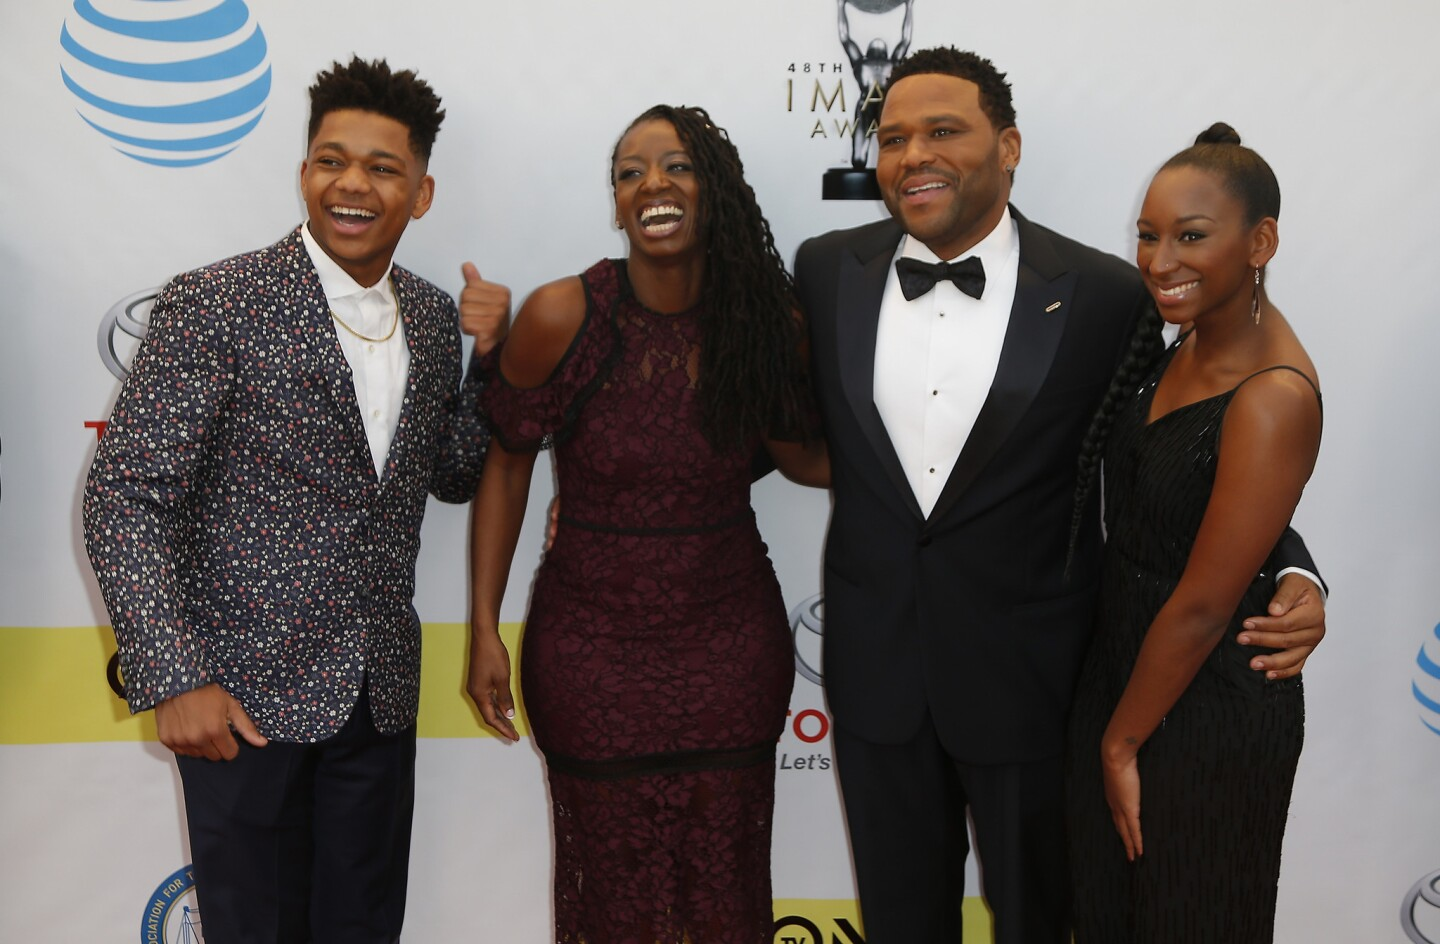 Host Anthony Anderson, second from right, wife Alvina Stewart and children Kyra Anderson and Nathan Anderson at the NAACP Image Awards.